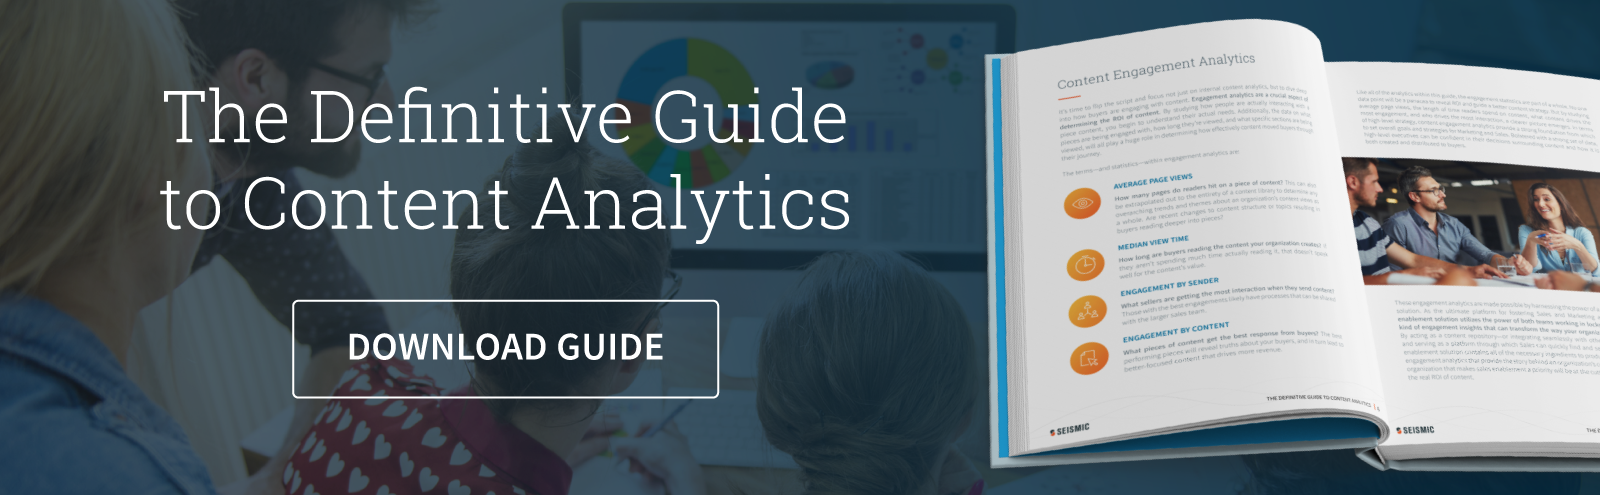 definitive guide to content analytics